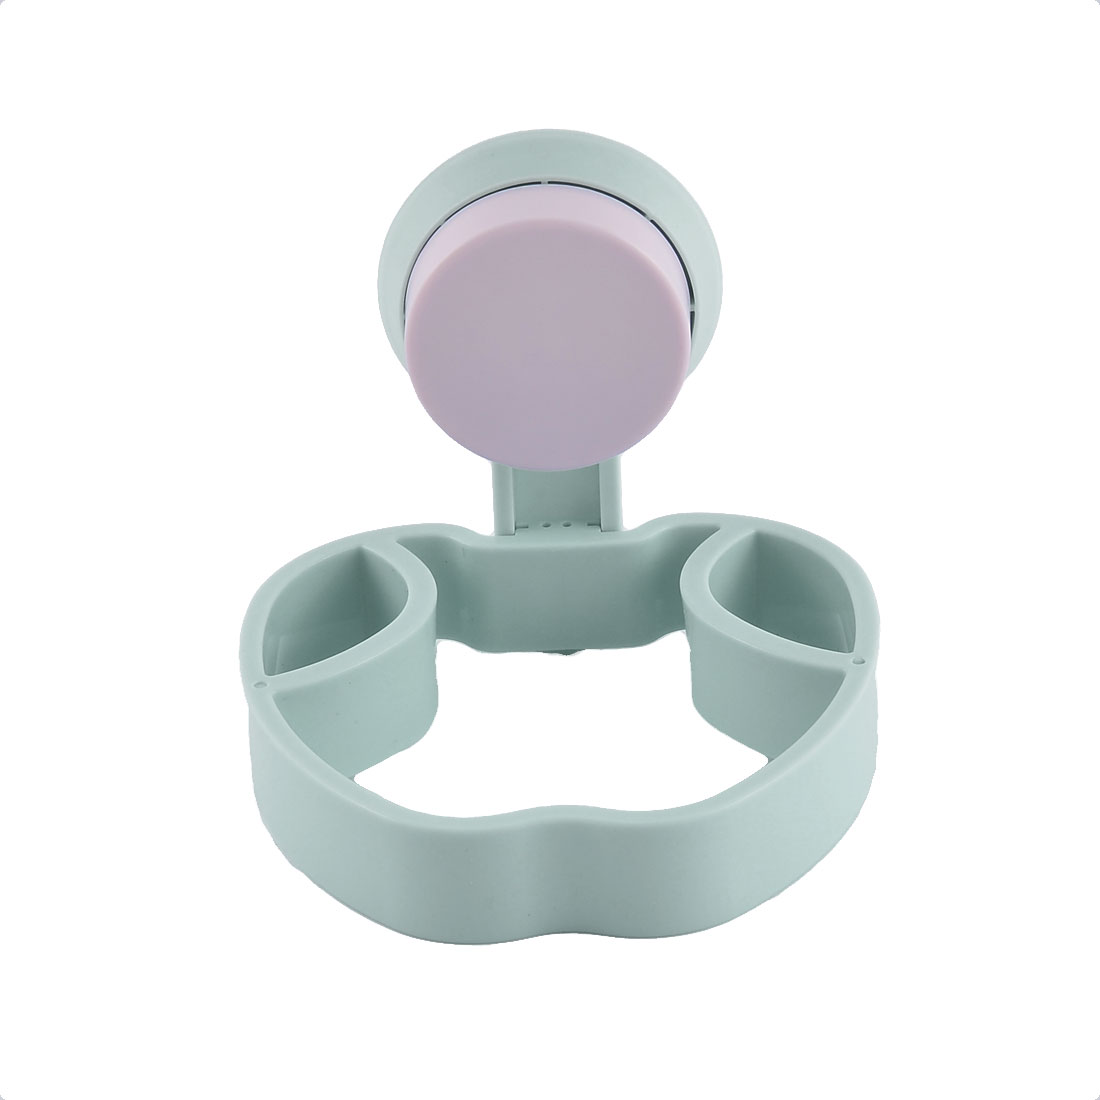 Household Home Plastic Wall Suction Cup Hair Dryer Hanger Holder Storage Pale Green